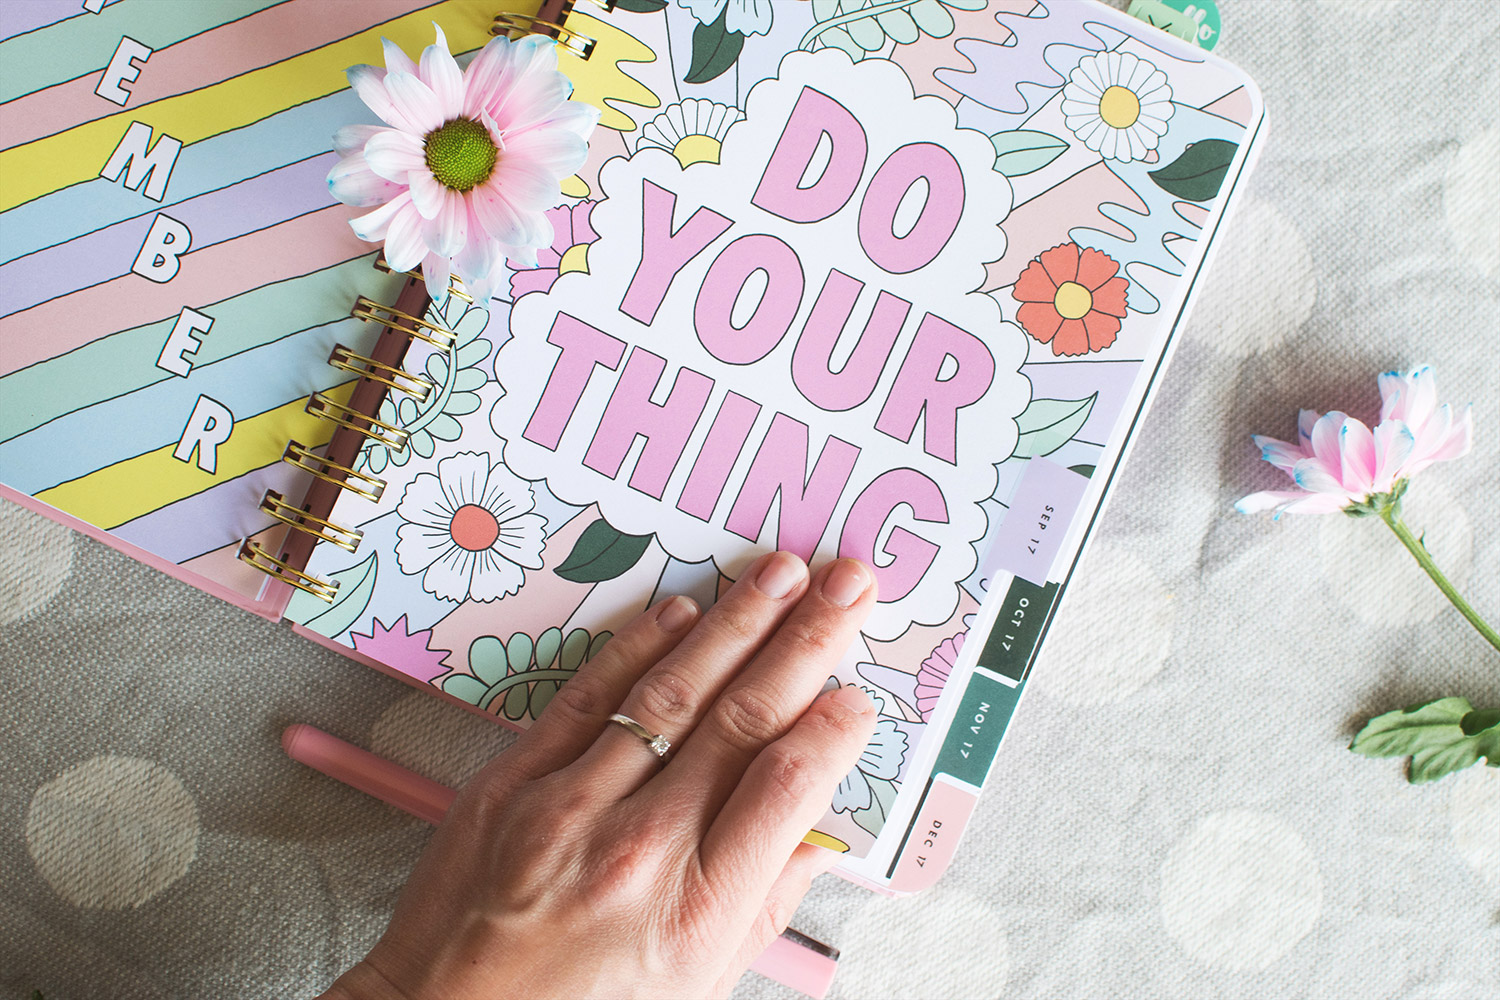 September Goals - Setting goals and aspirations for the next month. Bando 'no bad days' pink planner with stickers, highlighters and stationery